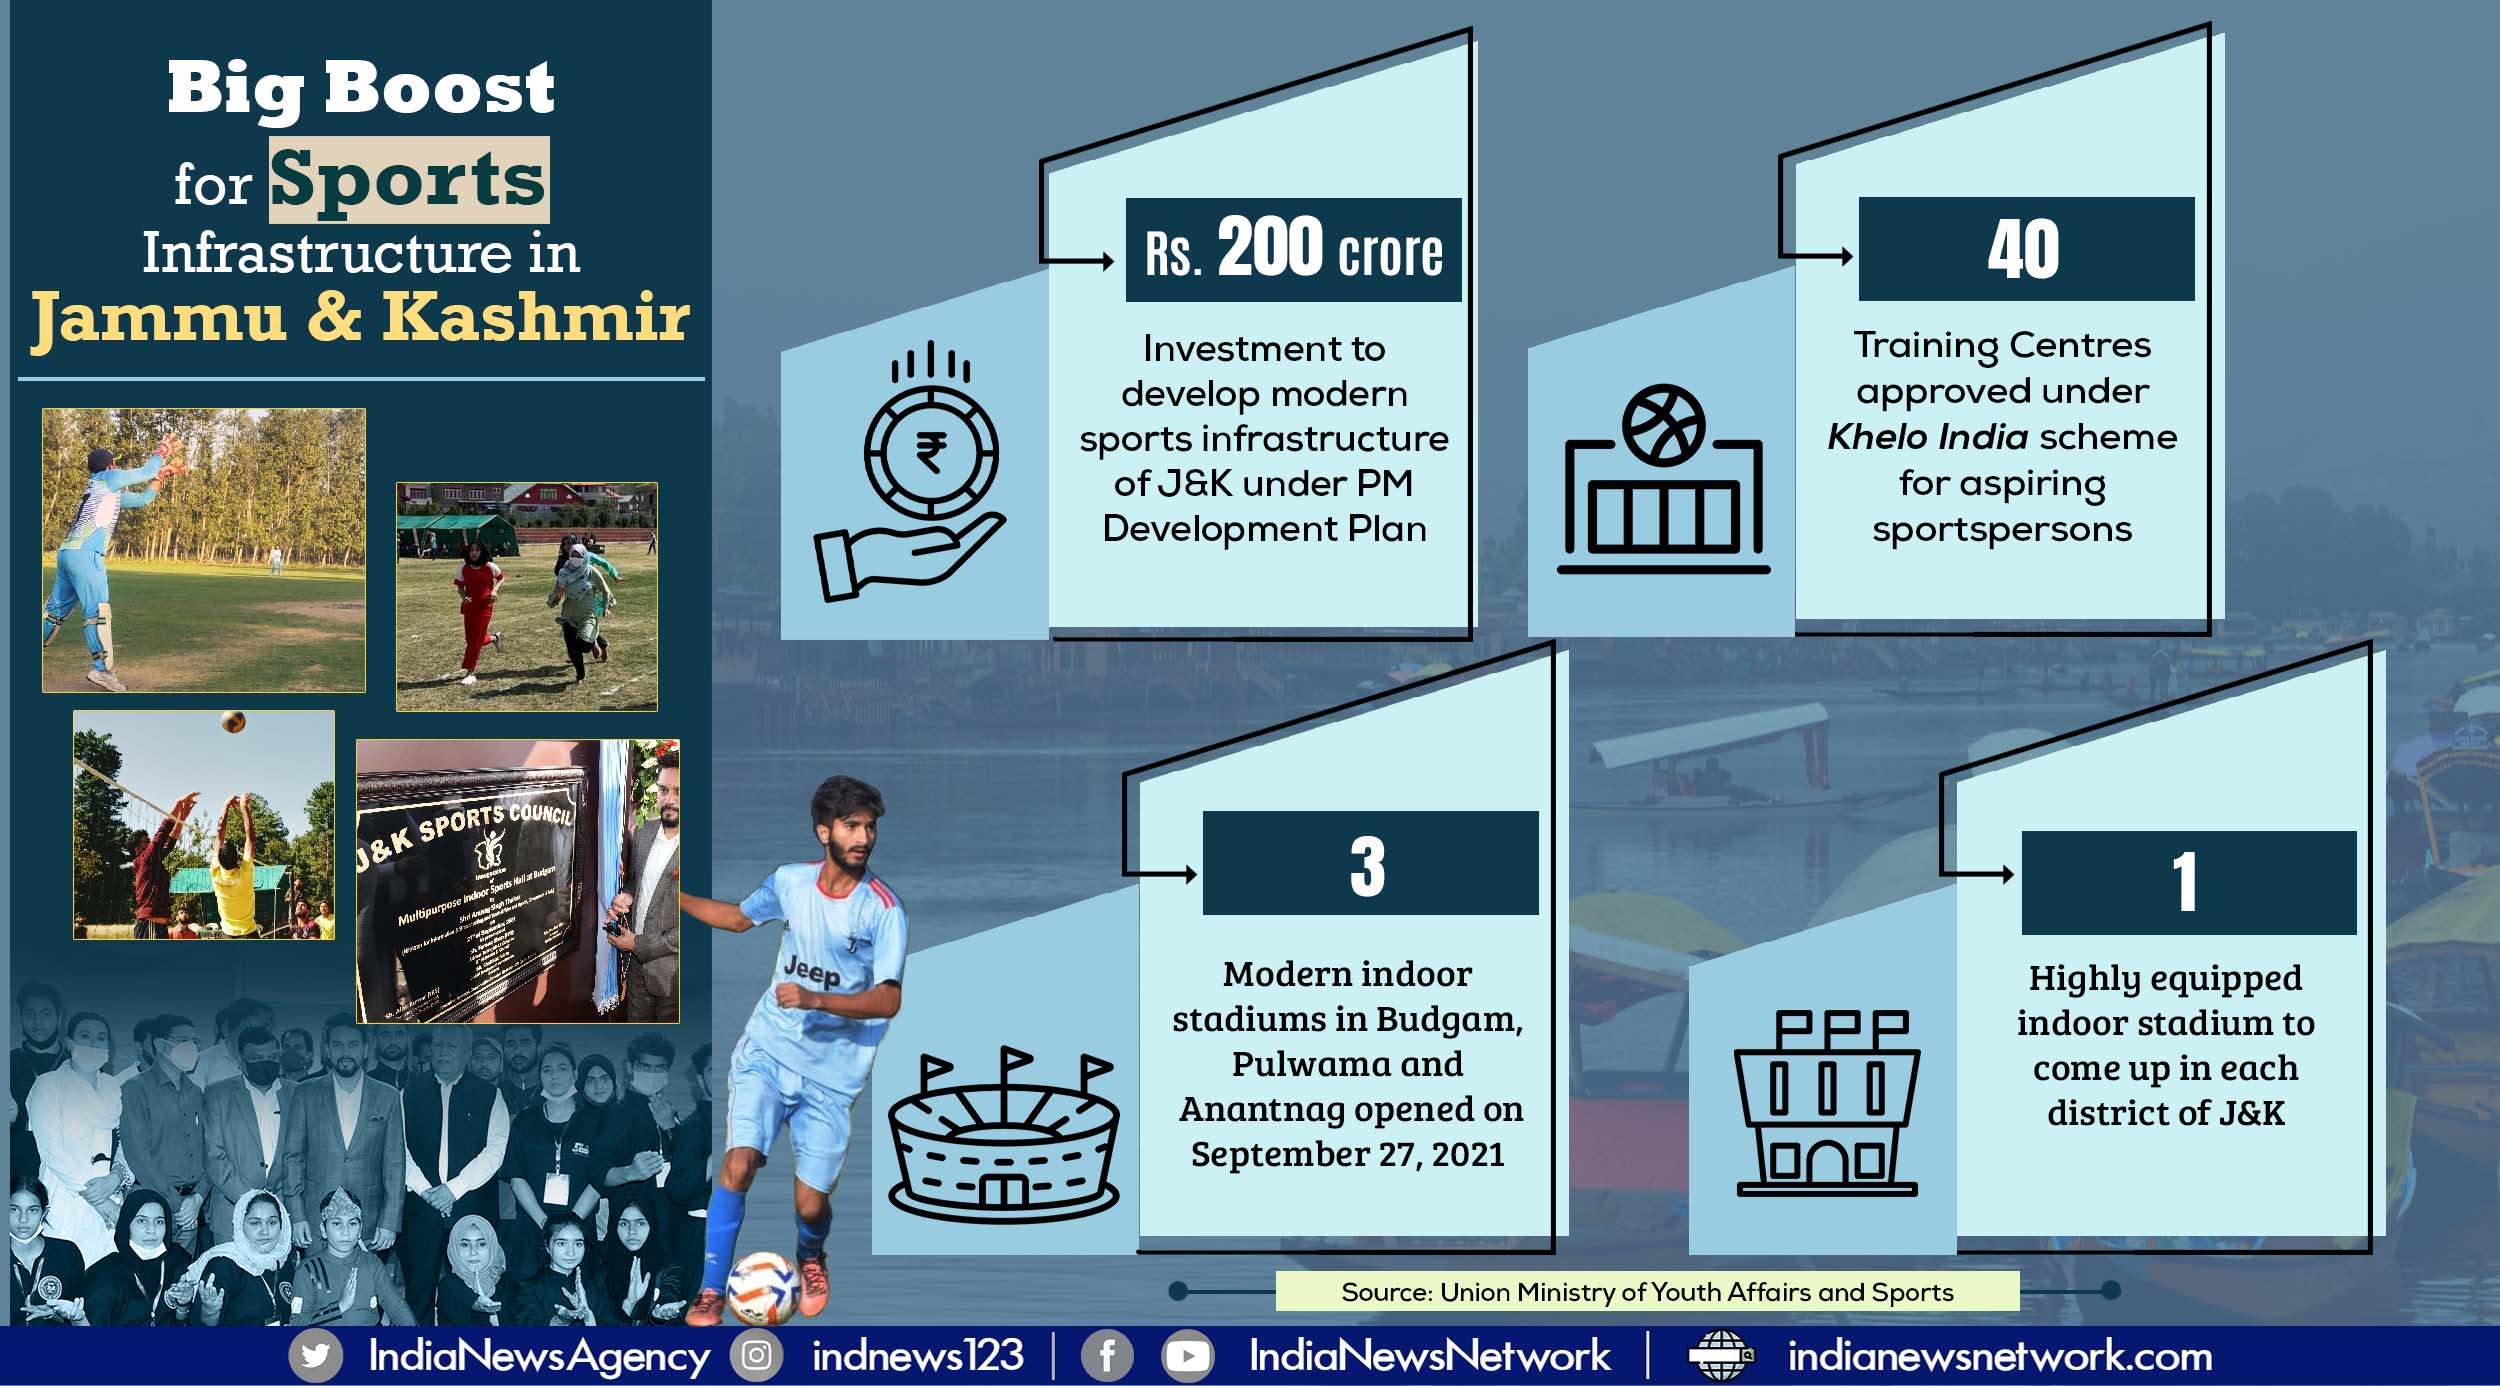 Rs 200 crores earmarked for development of playfields and indoor stadiums in J&K